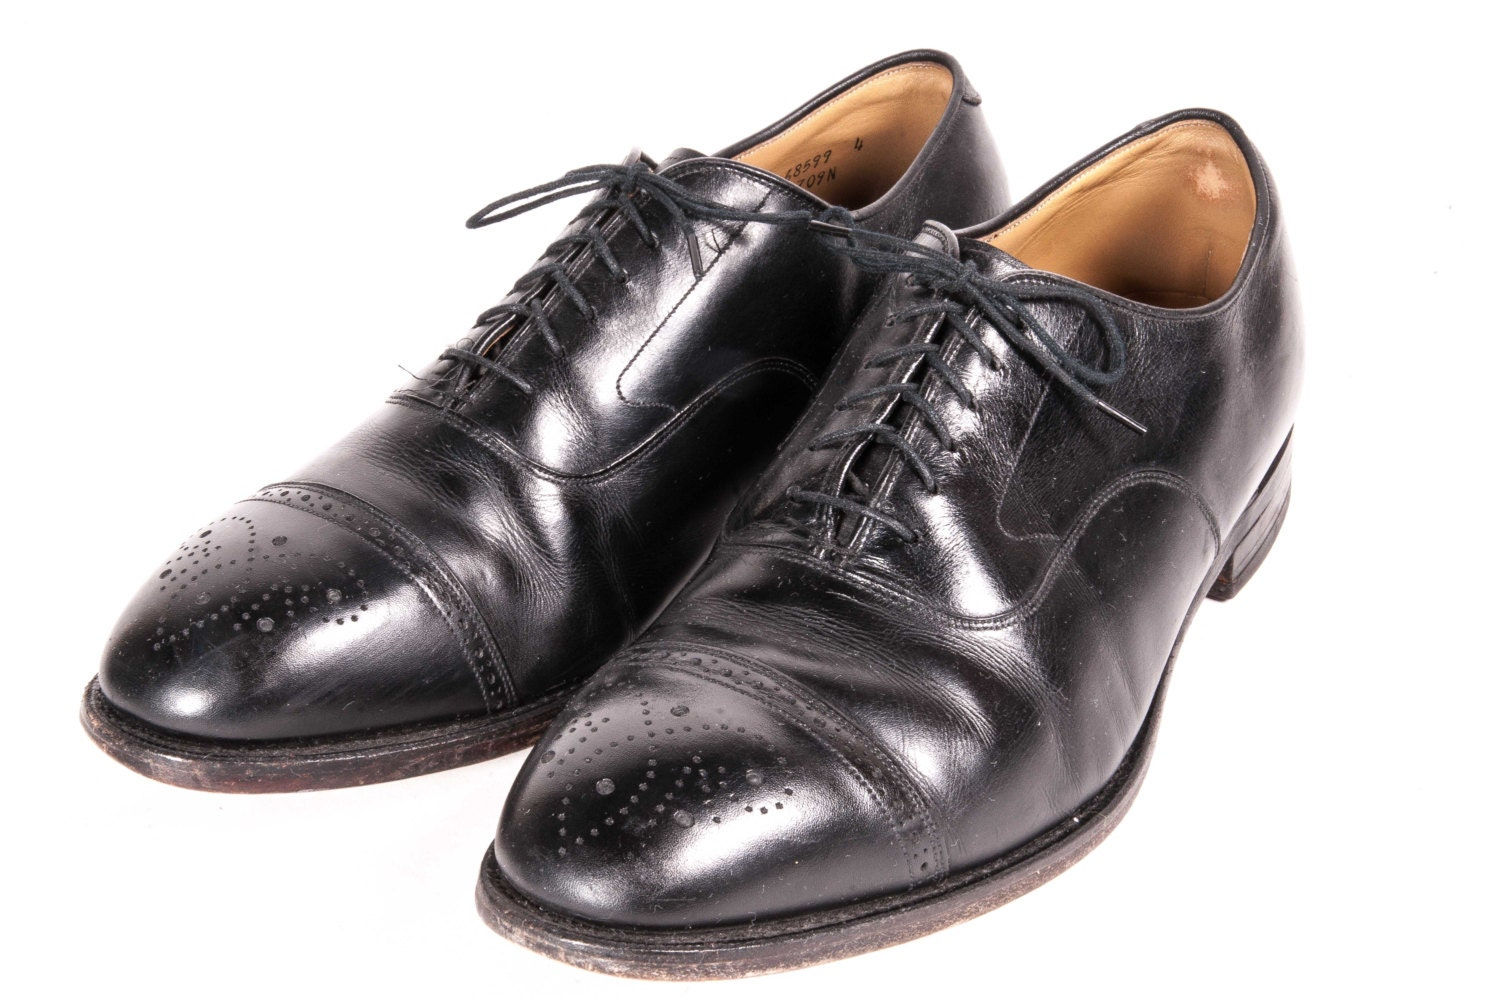 Shop for Johnston and Murphy Shoes for Women, Men & Kids | Dillard's at resultsmanual.gq Visit resultsmanual.gq to find clothing, accessories, shoes, cosmetics & more. The Style of Your Life.